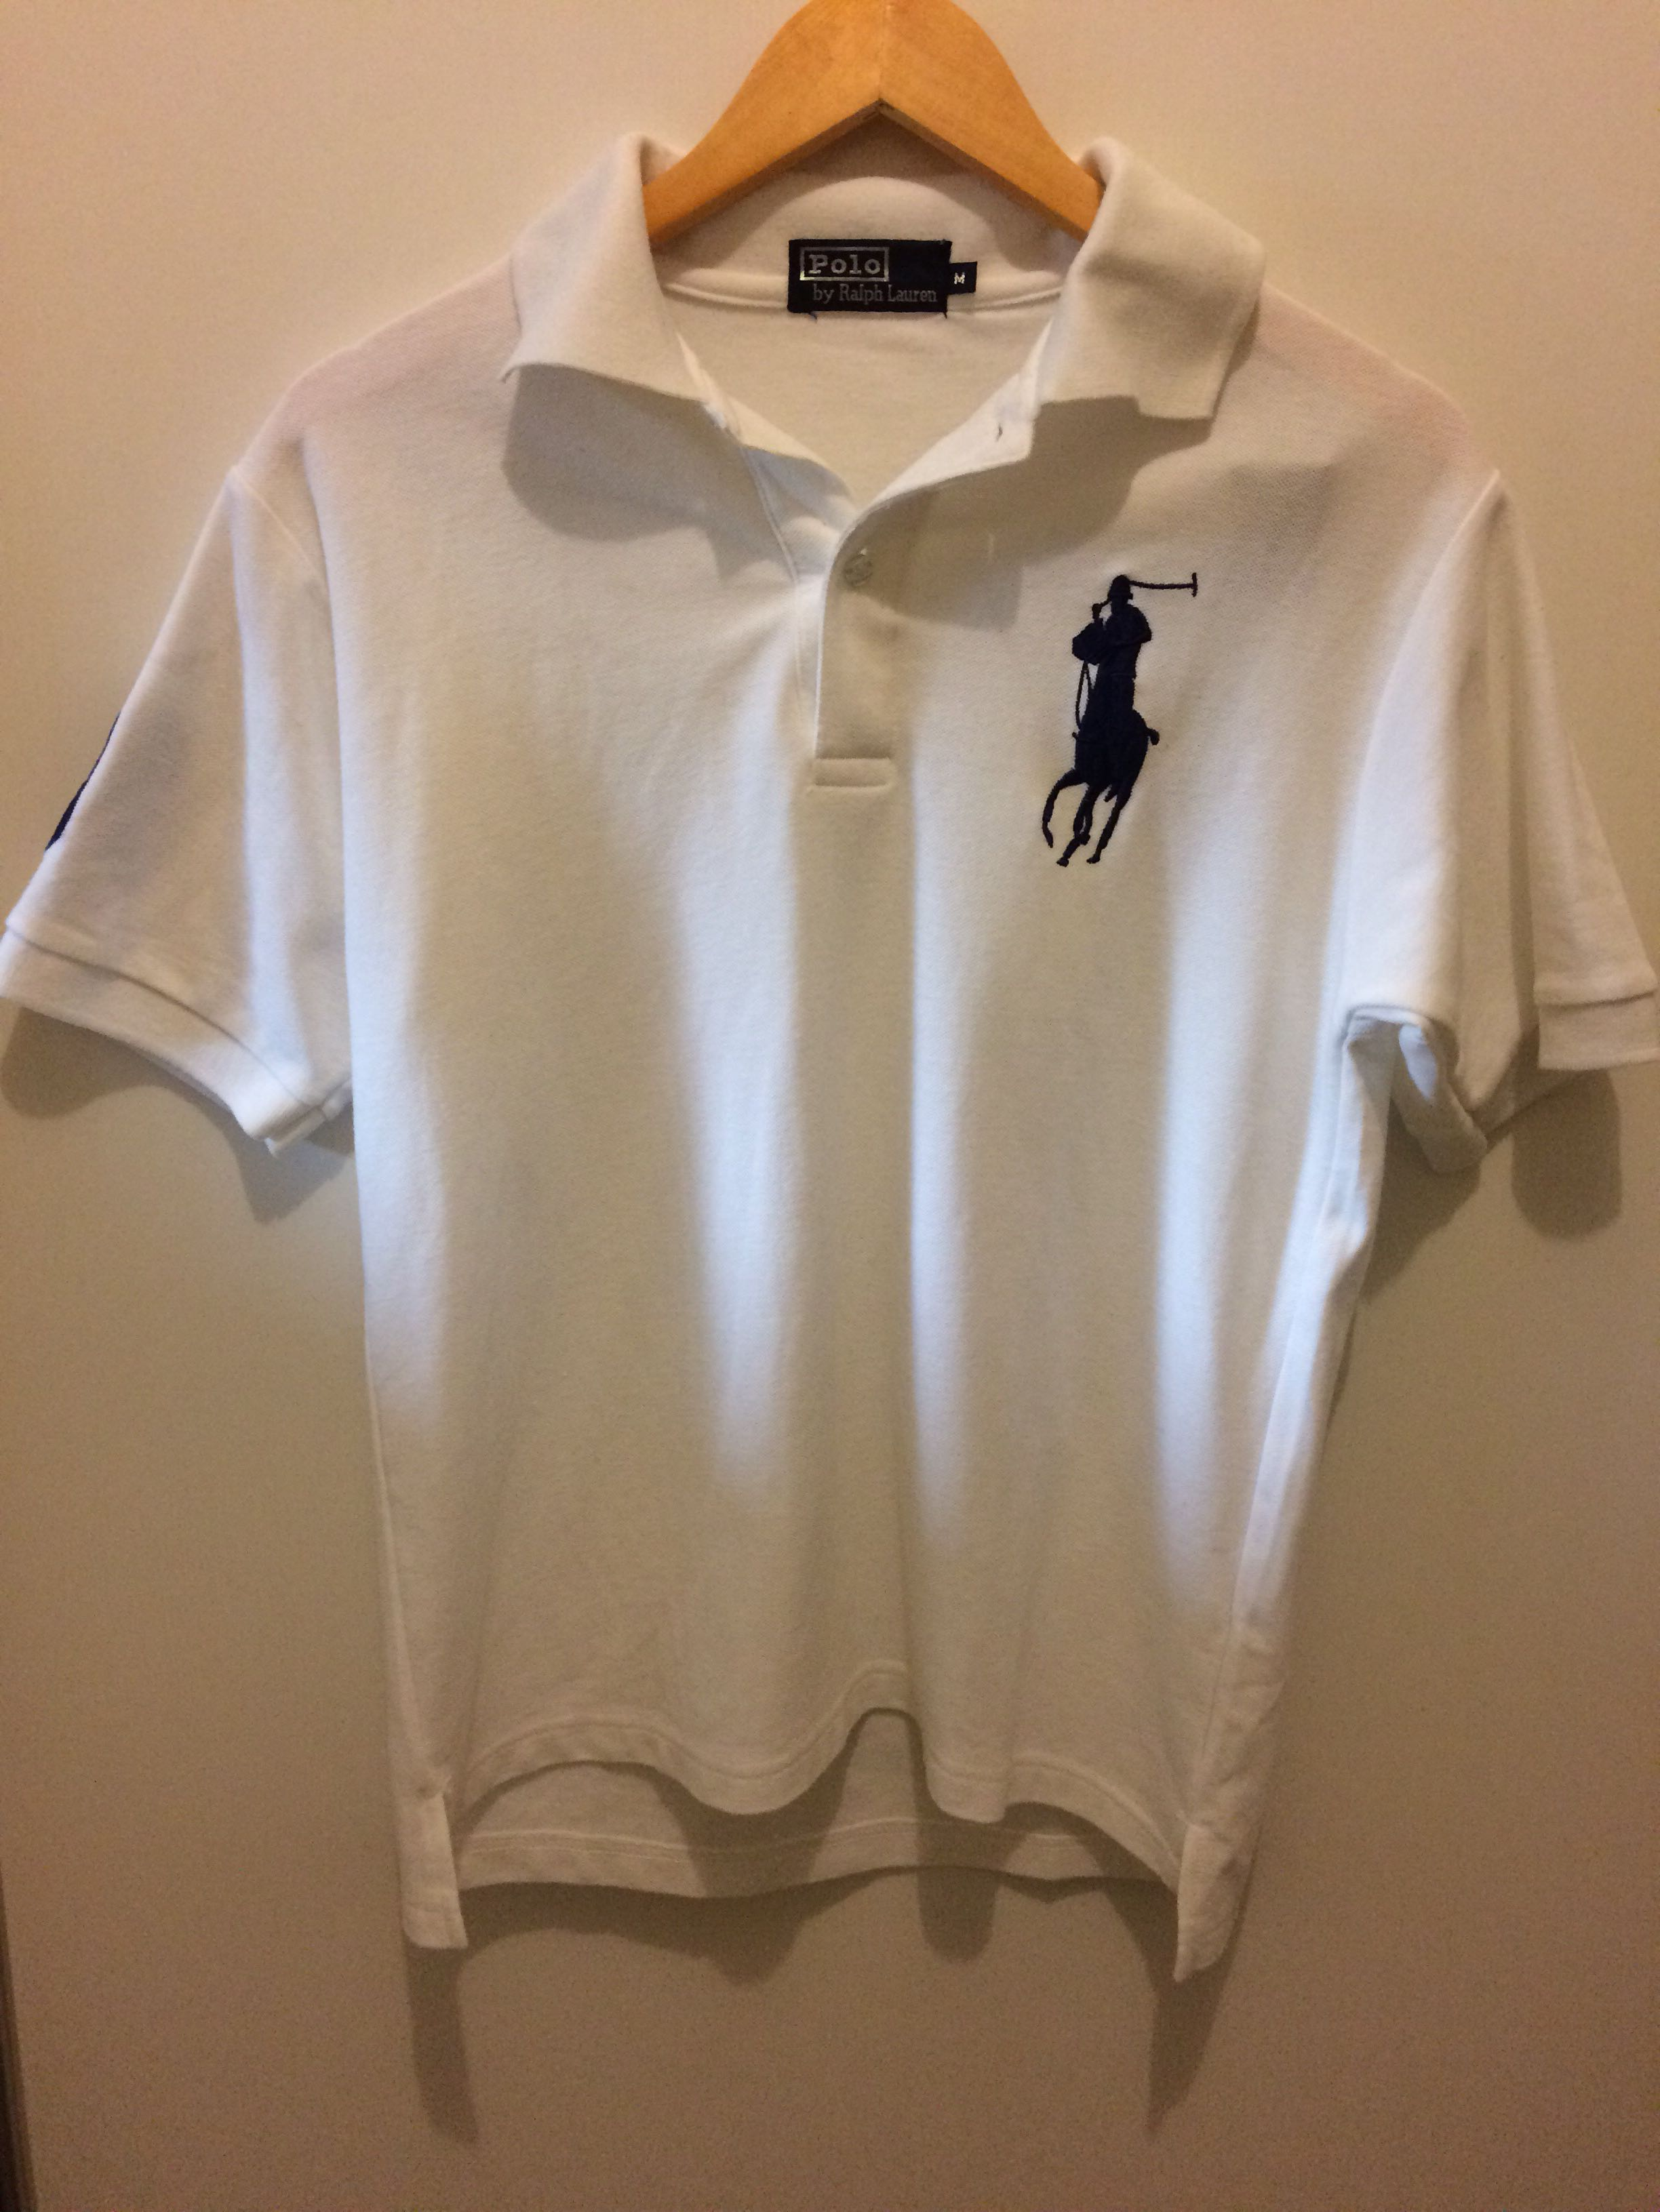 Polo Ralph Lauren white and navy top